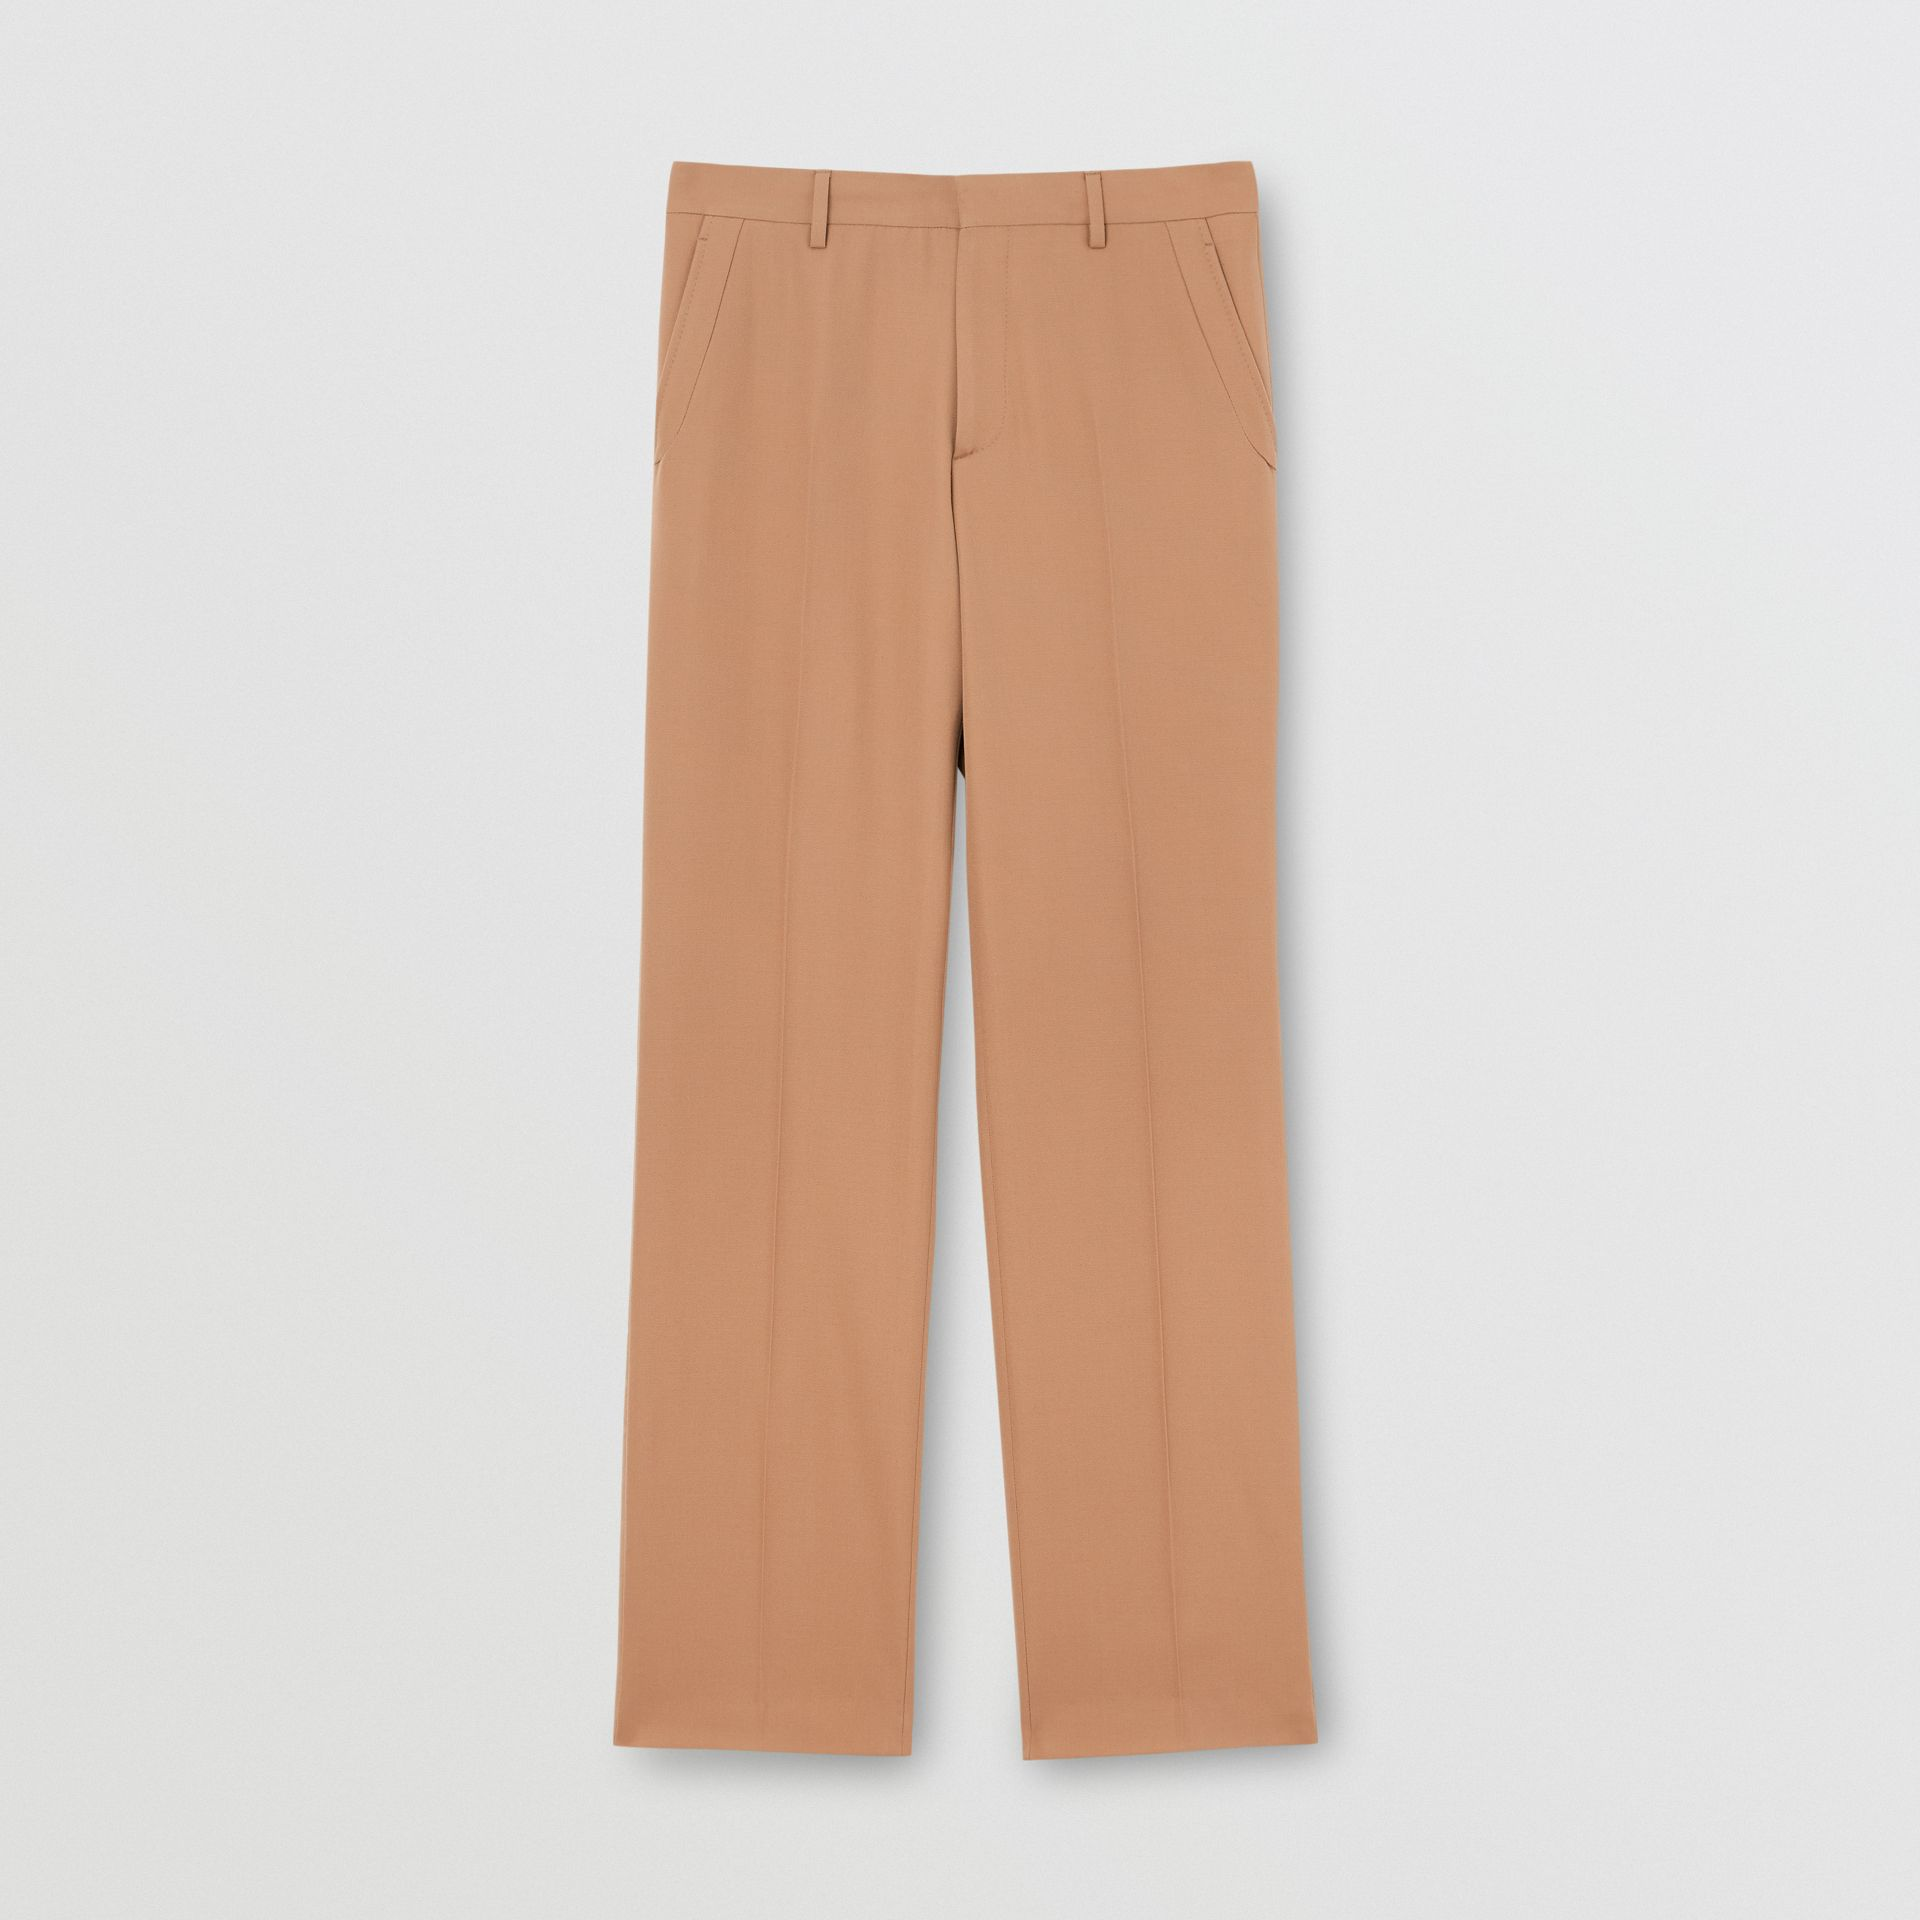 Stripe Detail Wool Tailored Trousers in Warm Camel - Men | Burberry United States - gallery image 3